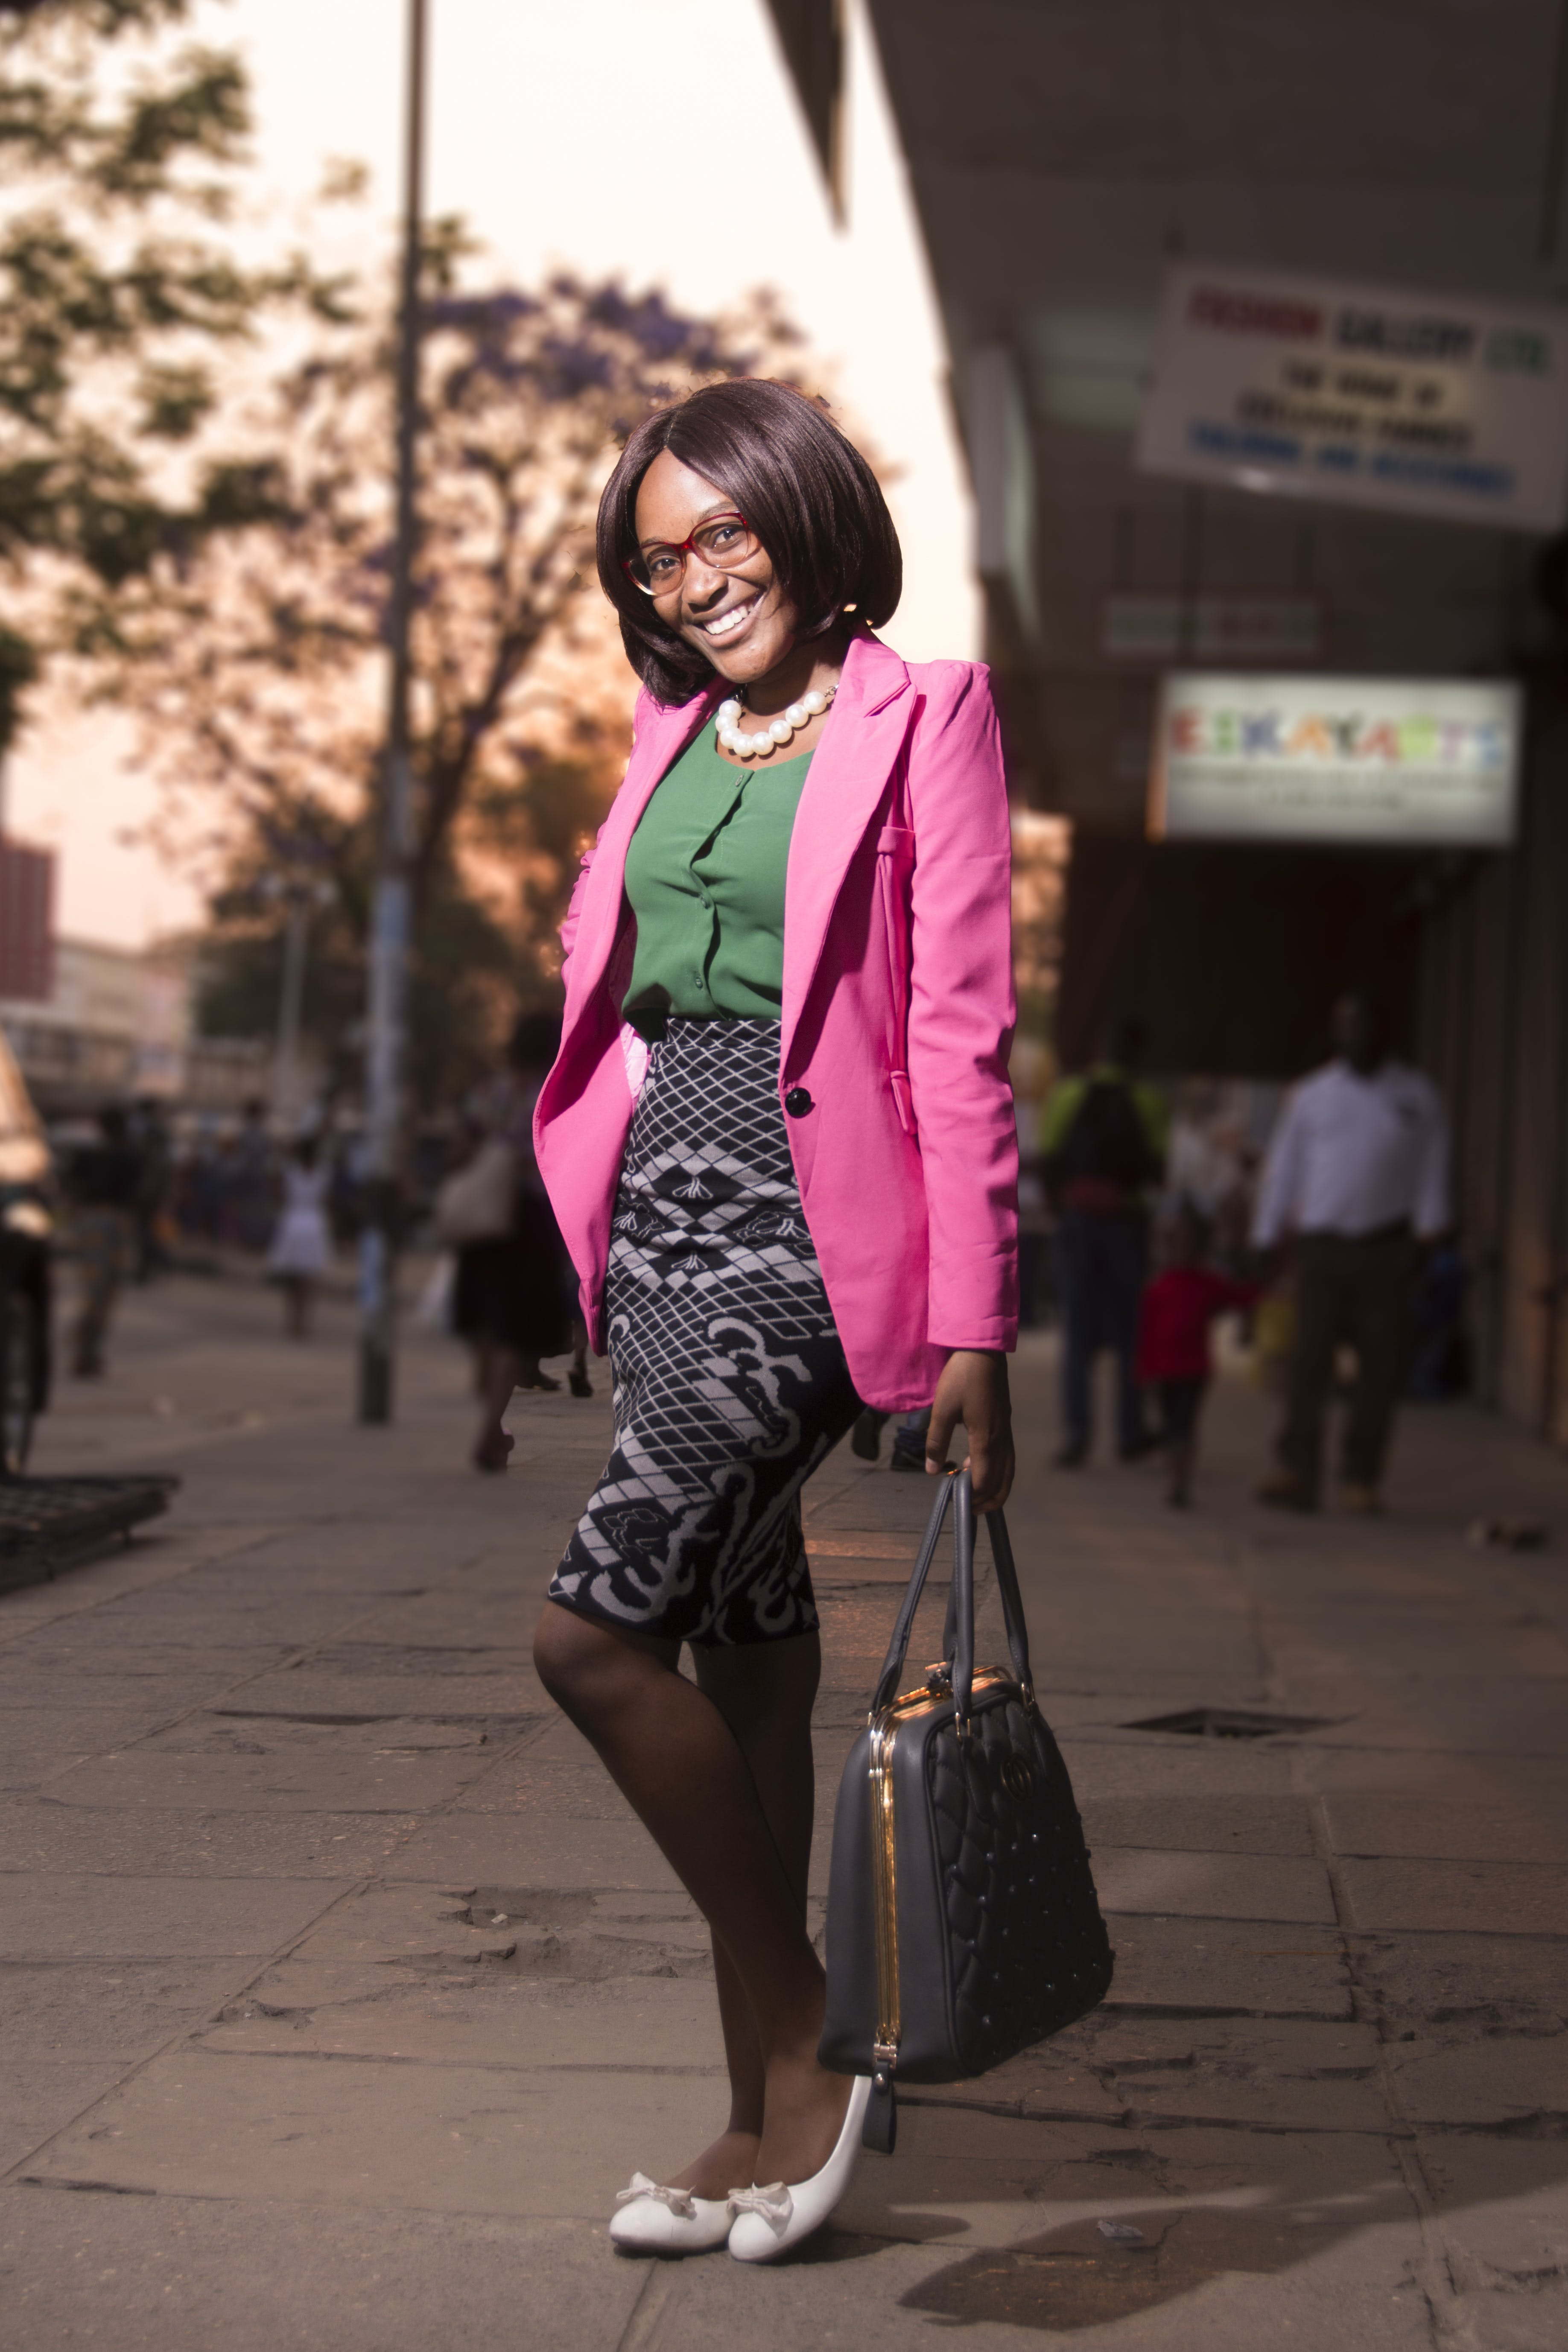 Woman in Pink Formal Coat and Green and Gray Dress With Black Hand Bag